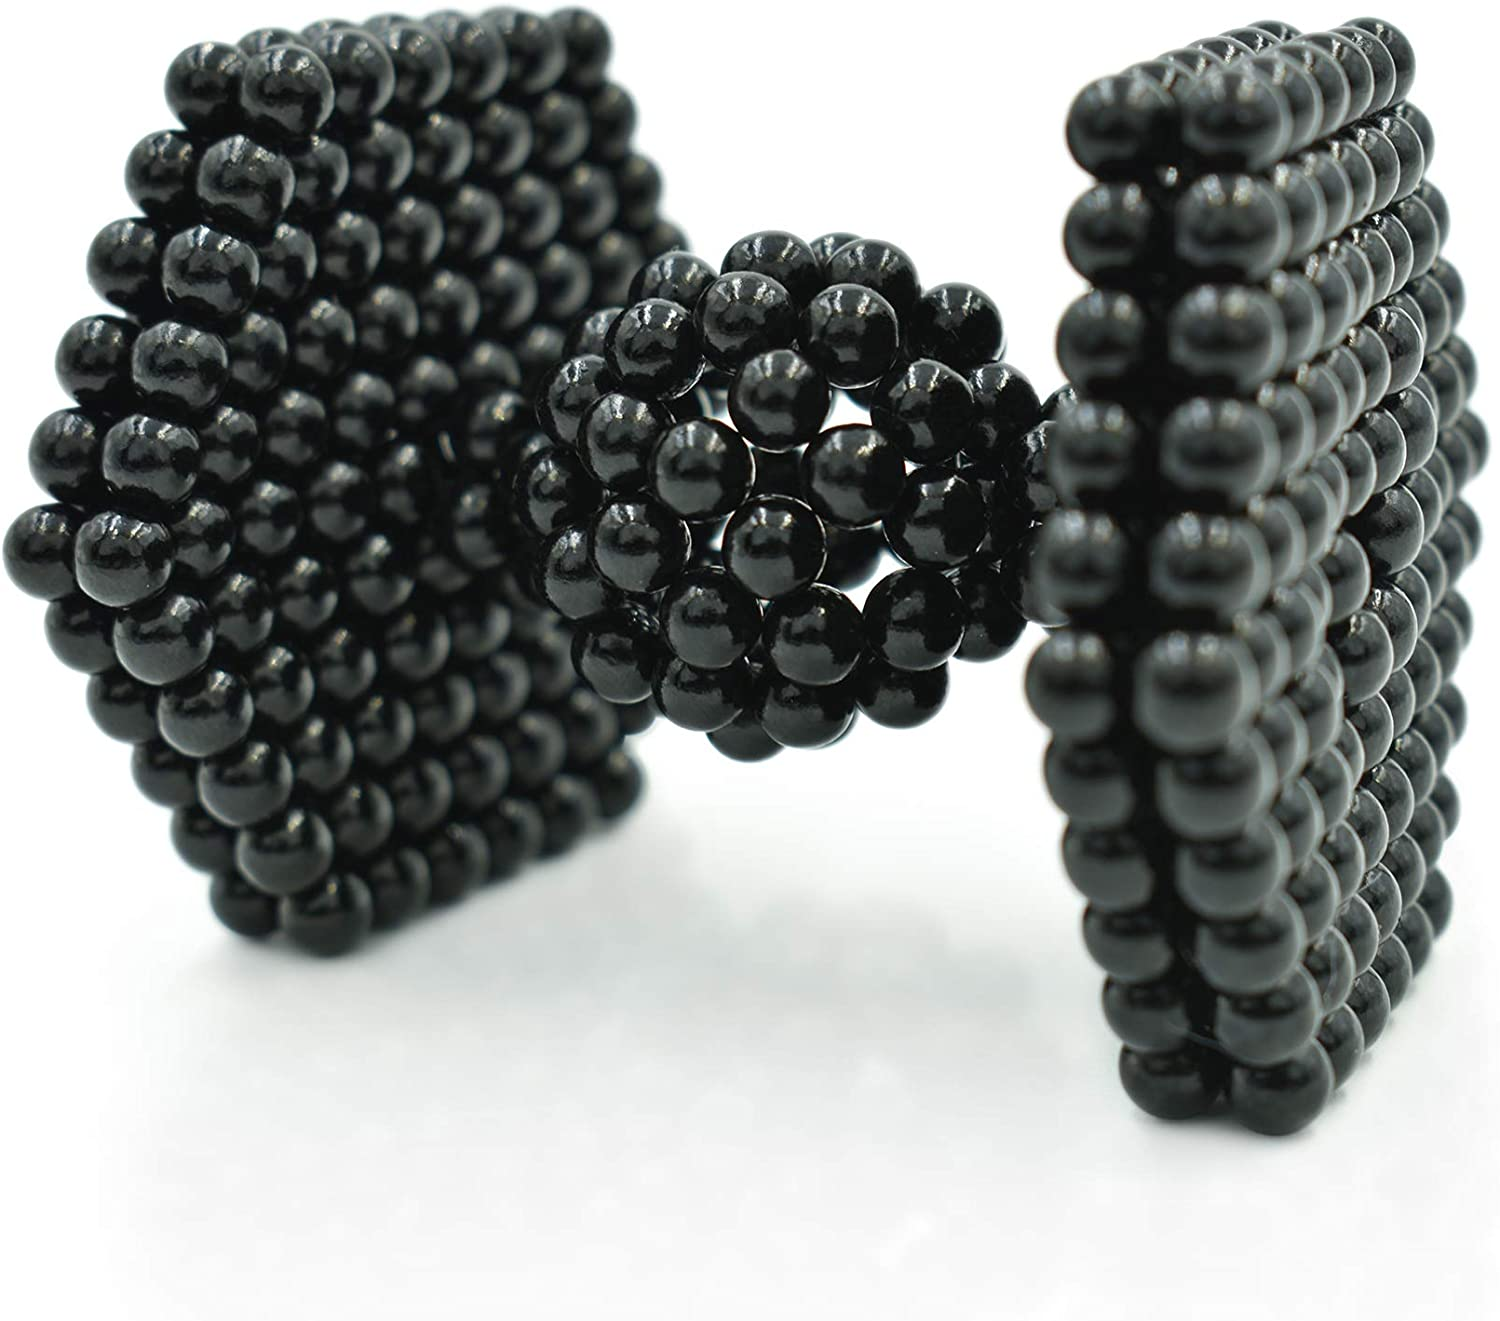 MagneDotz Magnetic Balls 5mm Fidget Gadget Toys Rare Earth Magnet Marbles Desk Toy Games Magnetic Beads Stress Relief Toys for Adults Black Edition